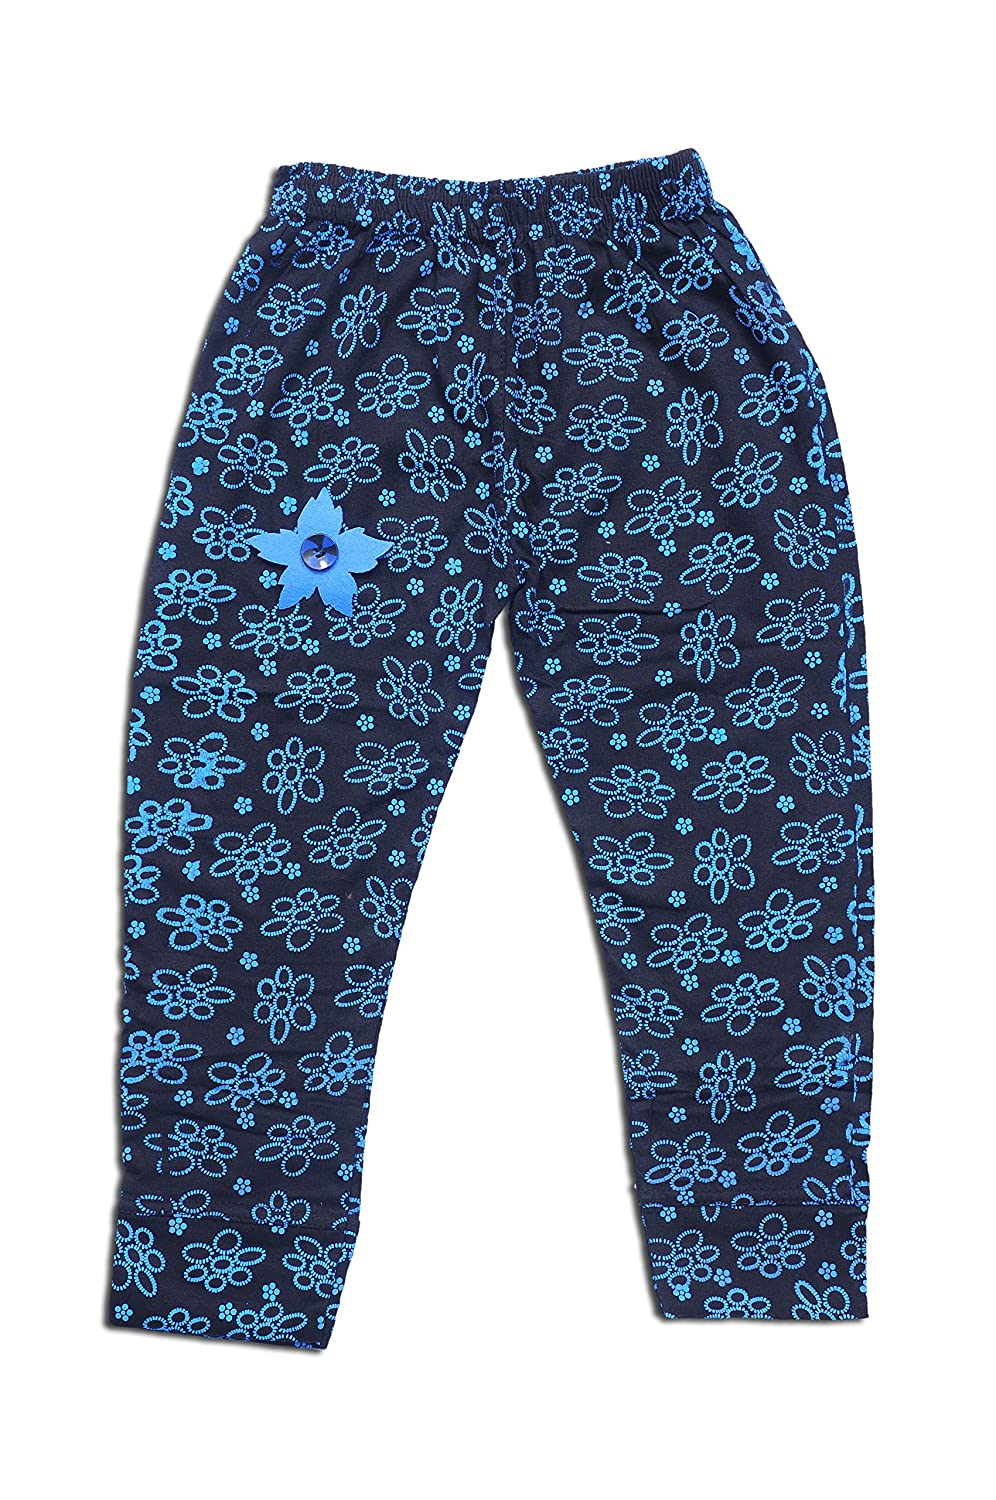 2f534c0a0415e T2F Girl's Cotton Printed Leggings - Pack Of 5: Amazon.in: Clothing &  Accessories